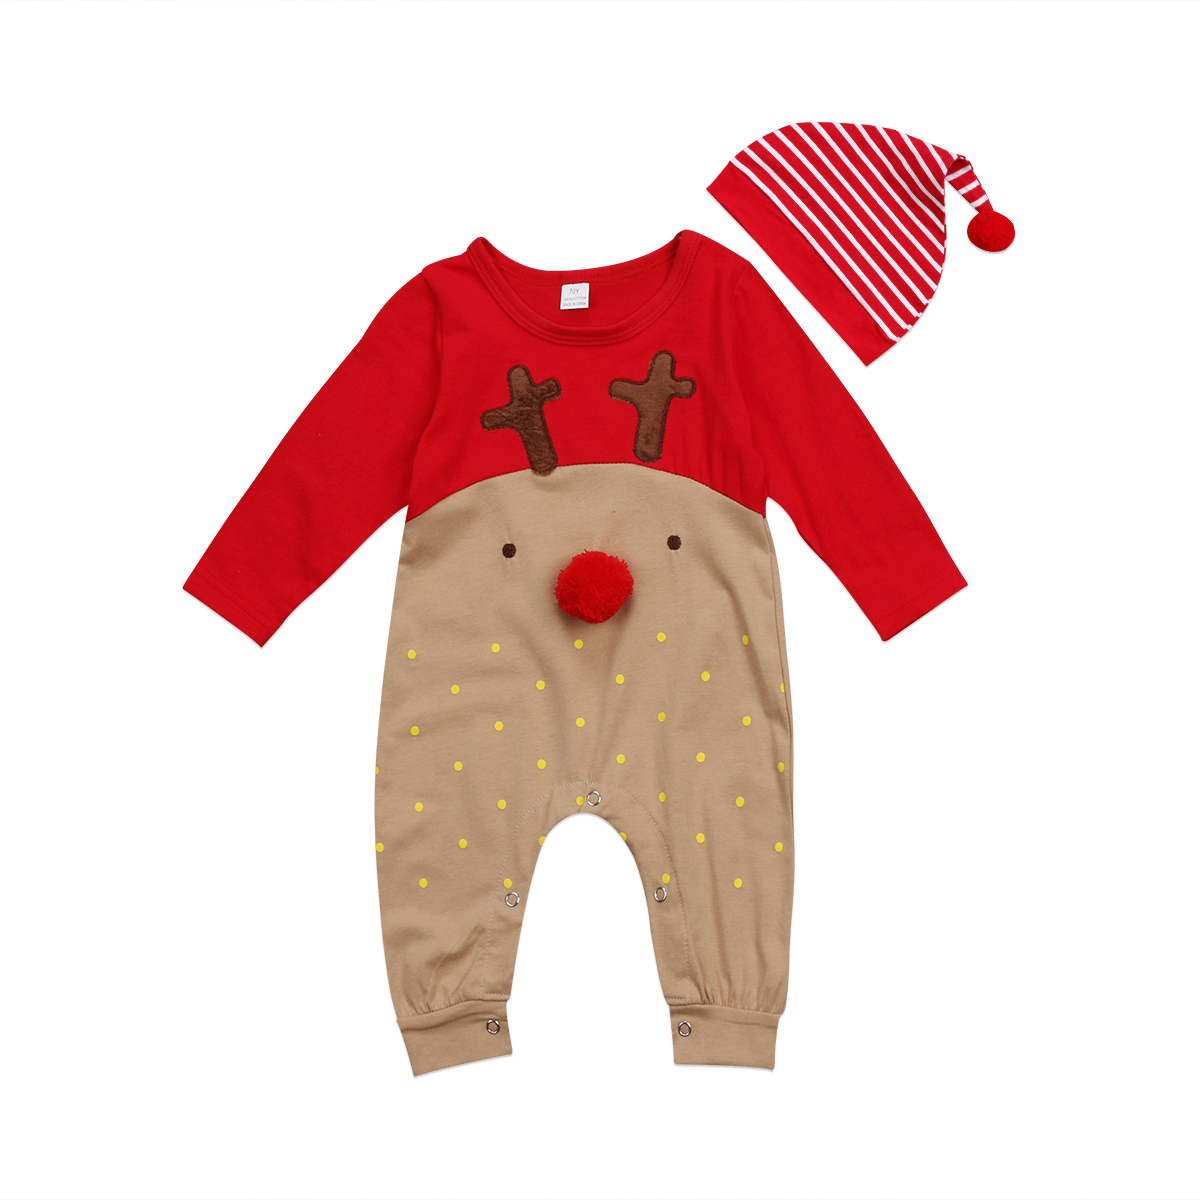 Super Cute Babies 2 PCS XMAS Romper Clothing Set Newborn Baby Boy Girl Christmas Rompers Striped Hats Jumpsuit Outfits Clothes 2 pcs babies kid cute christmas romper hat headband outfits newborn baby boys girls xmas santa claus rompers infant kids clothes